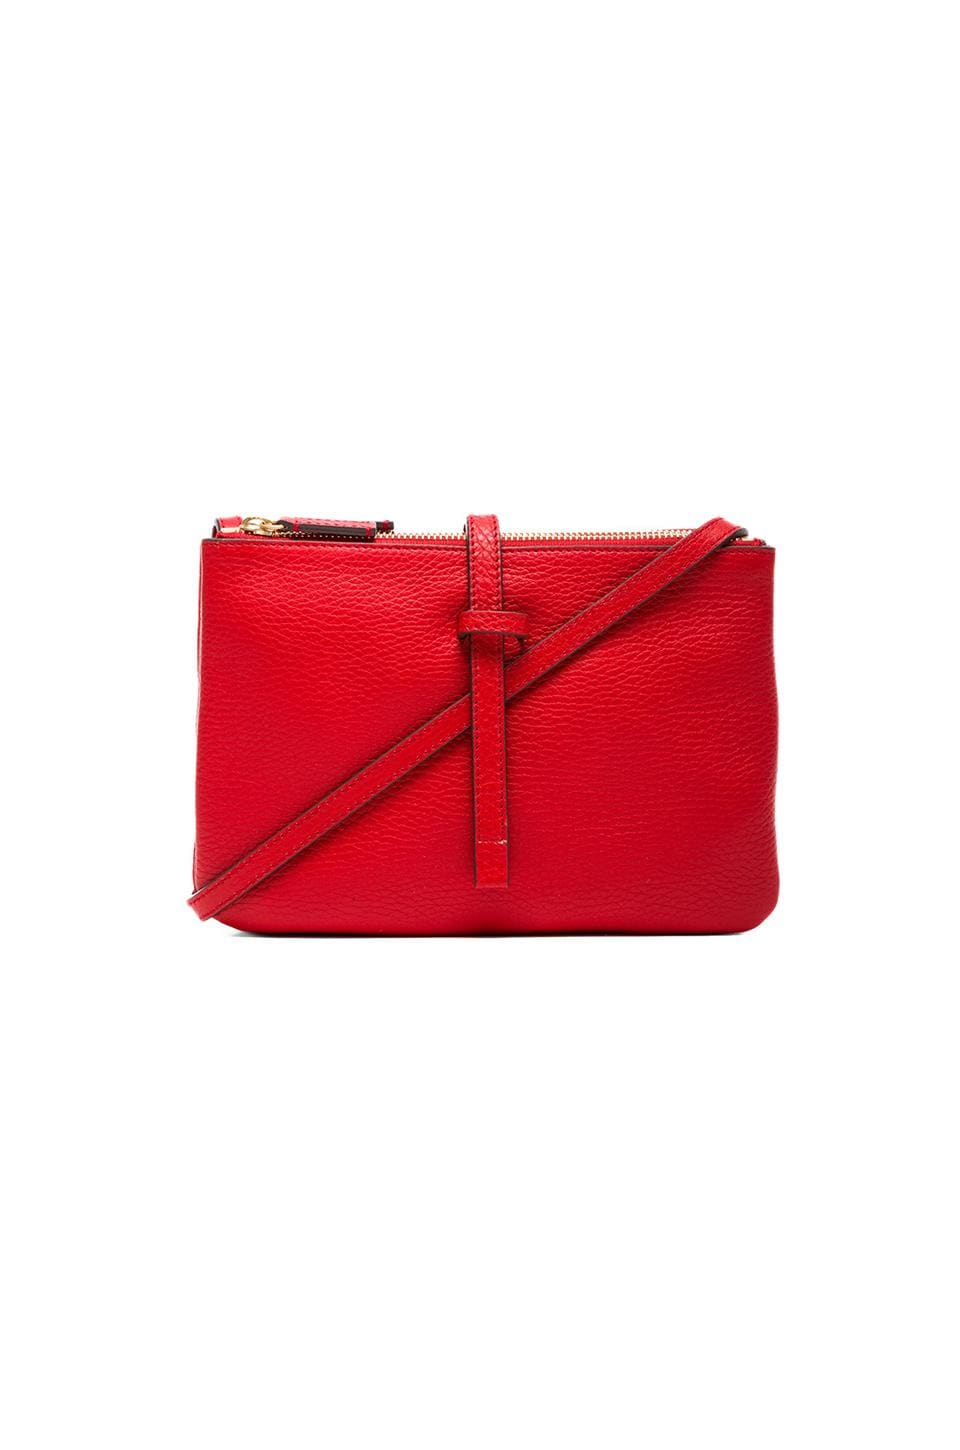 Annabel Ingall Jojo Crossbody in Chili